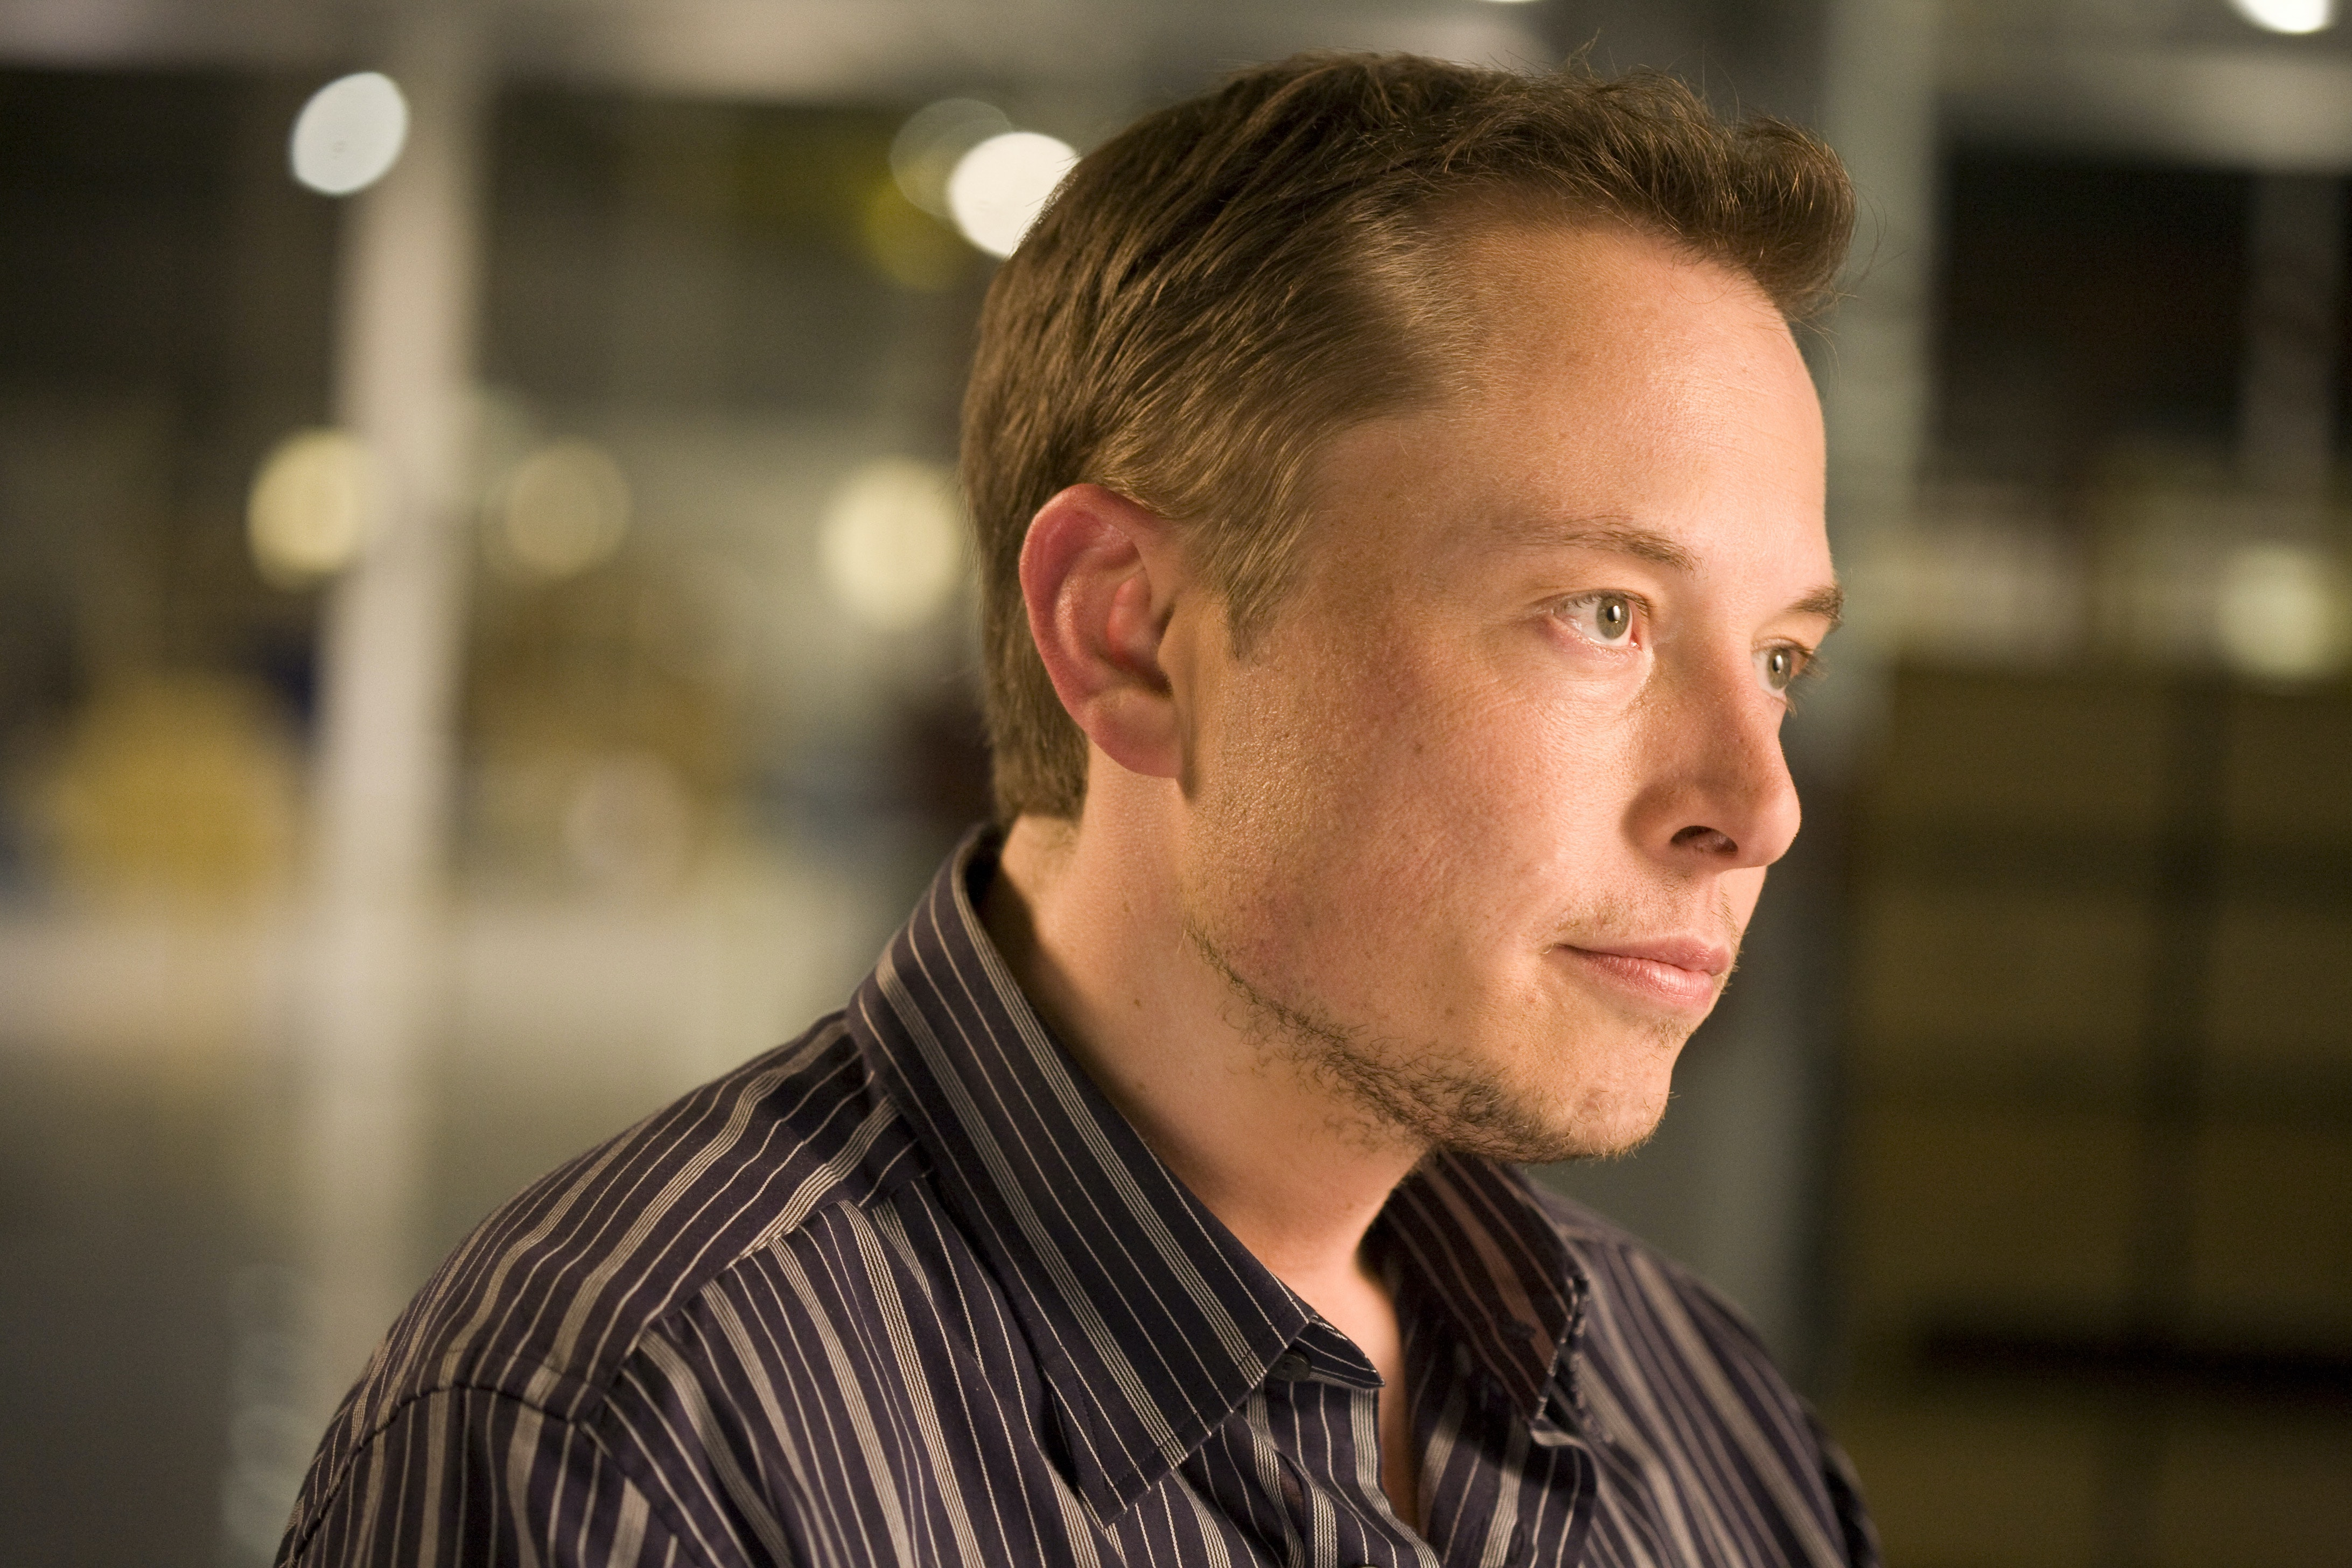 Elon Musk Says Bitcoin's 'Brilliant' Structure Has One Key Flaw